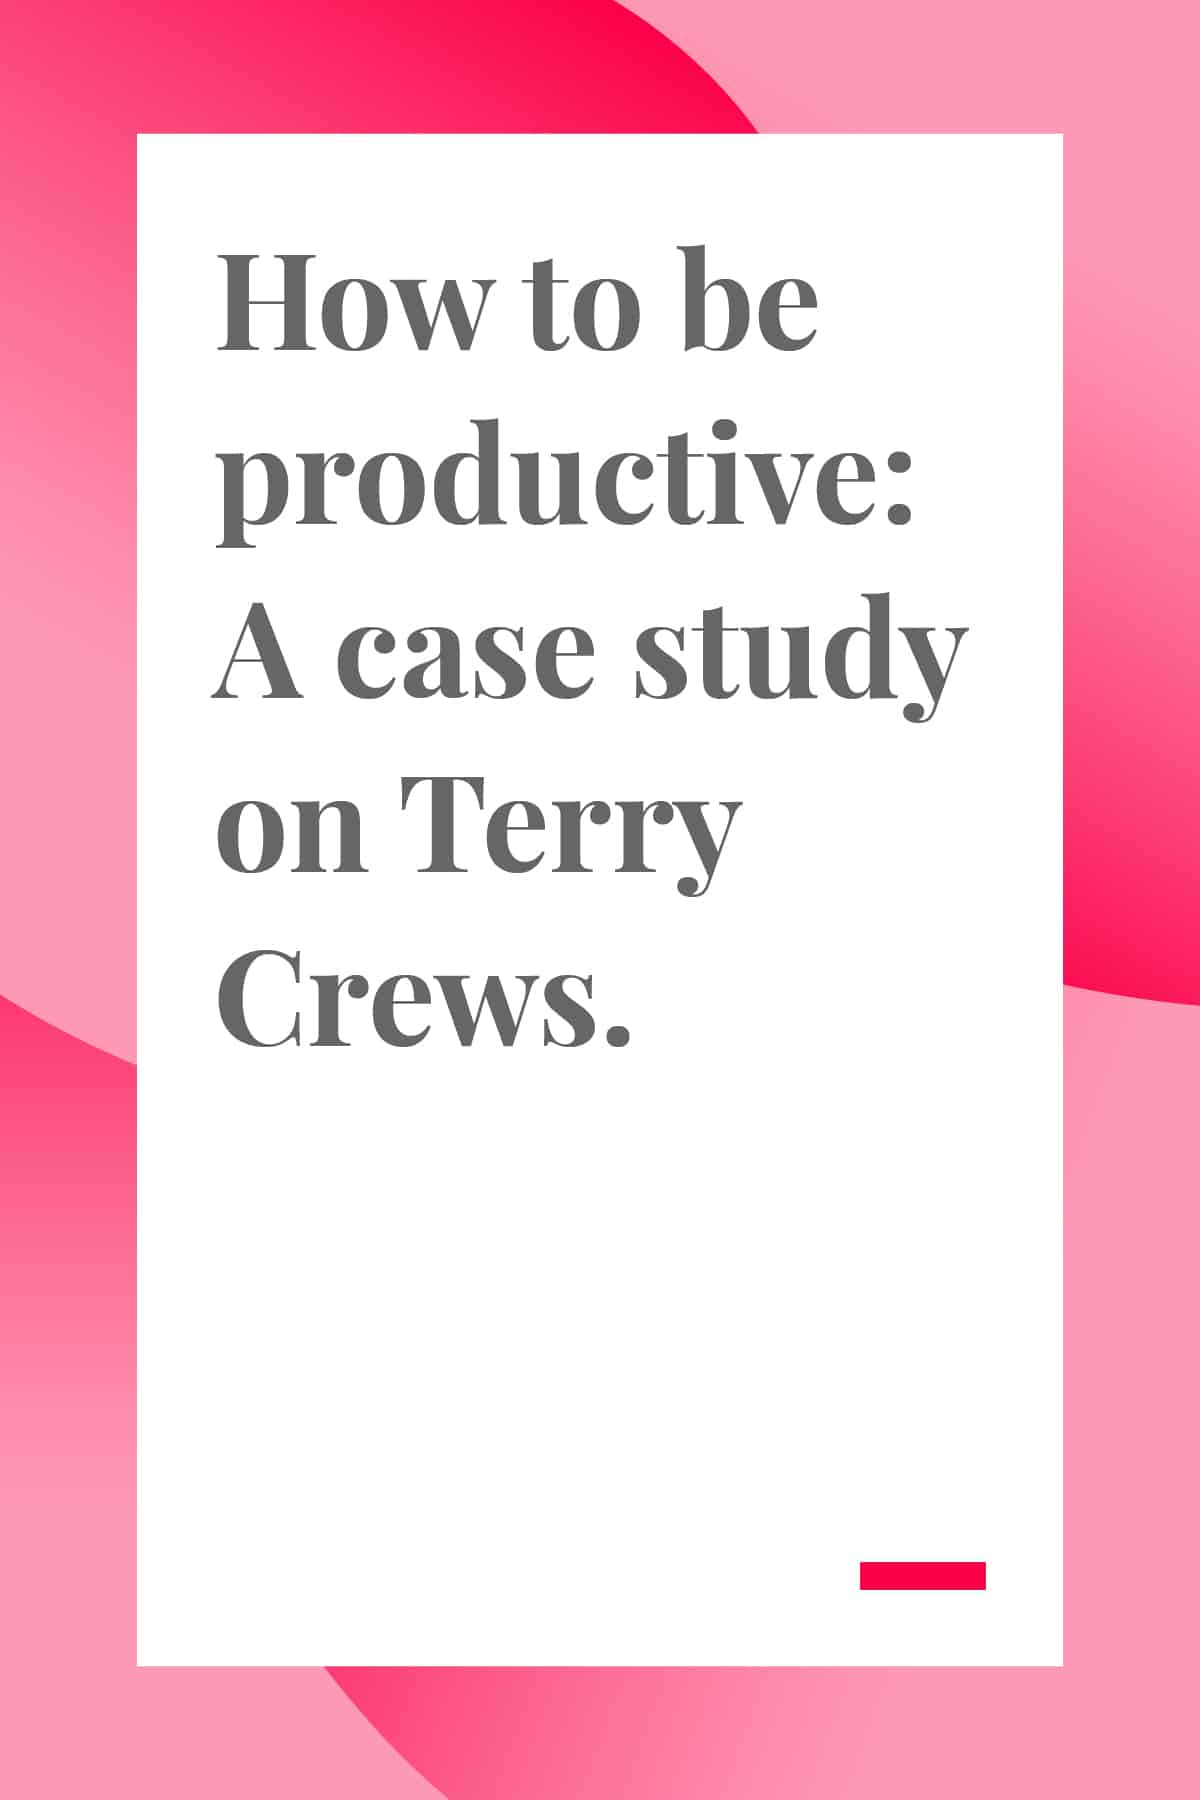 Want to be more productive? In this case study, Terry Crews shares his daily schedule with lots of productivity hacks and tips. #productivity